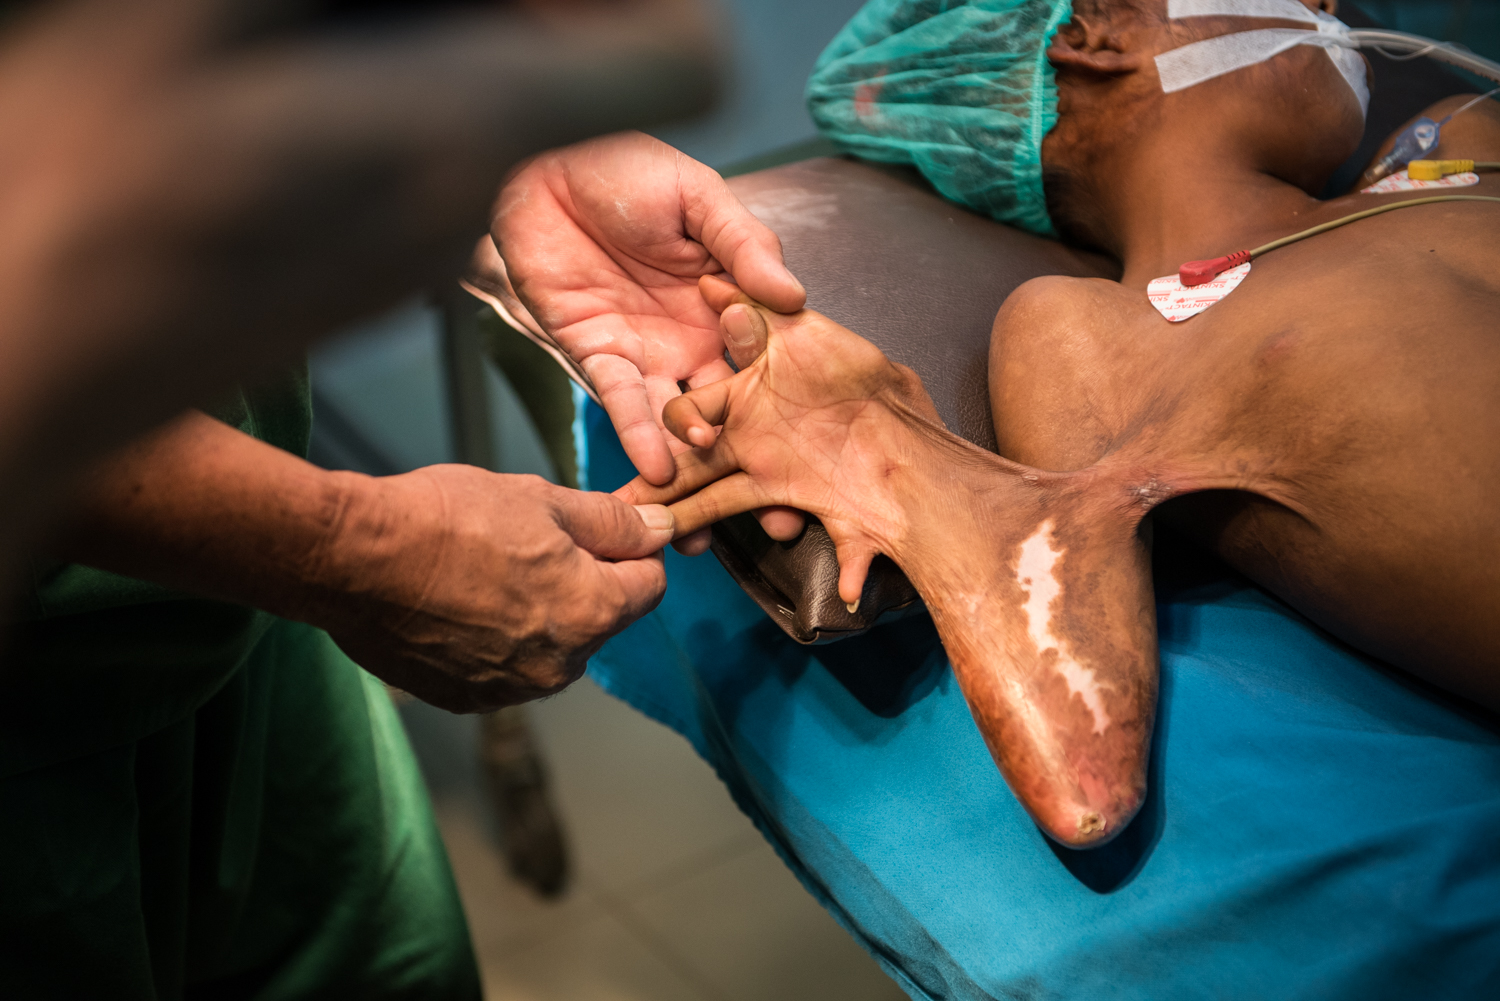 Surgical Training Session In Burns Treatment